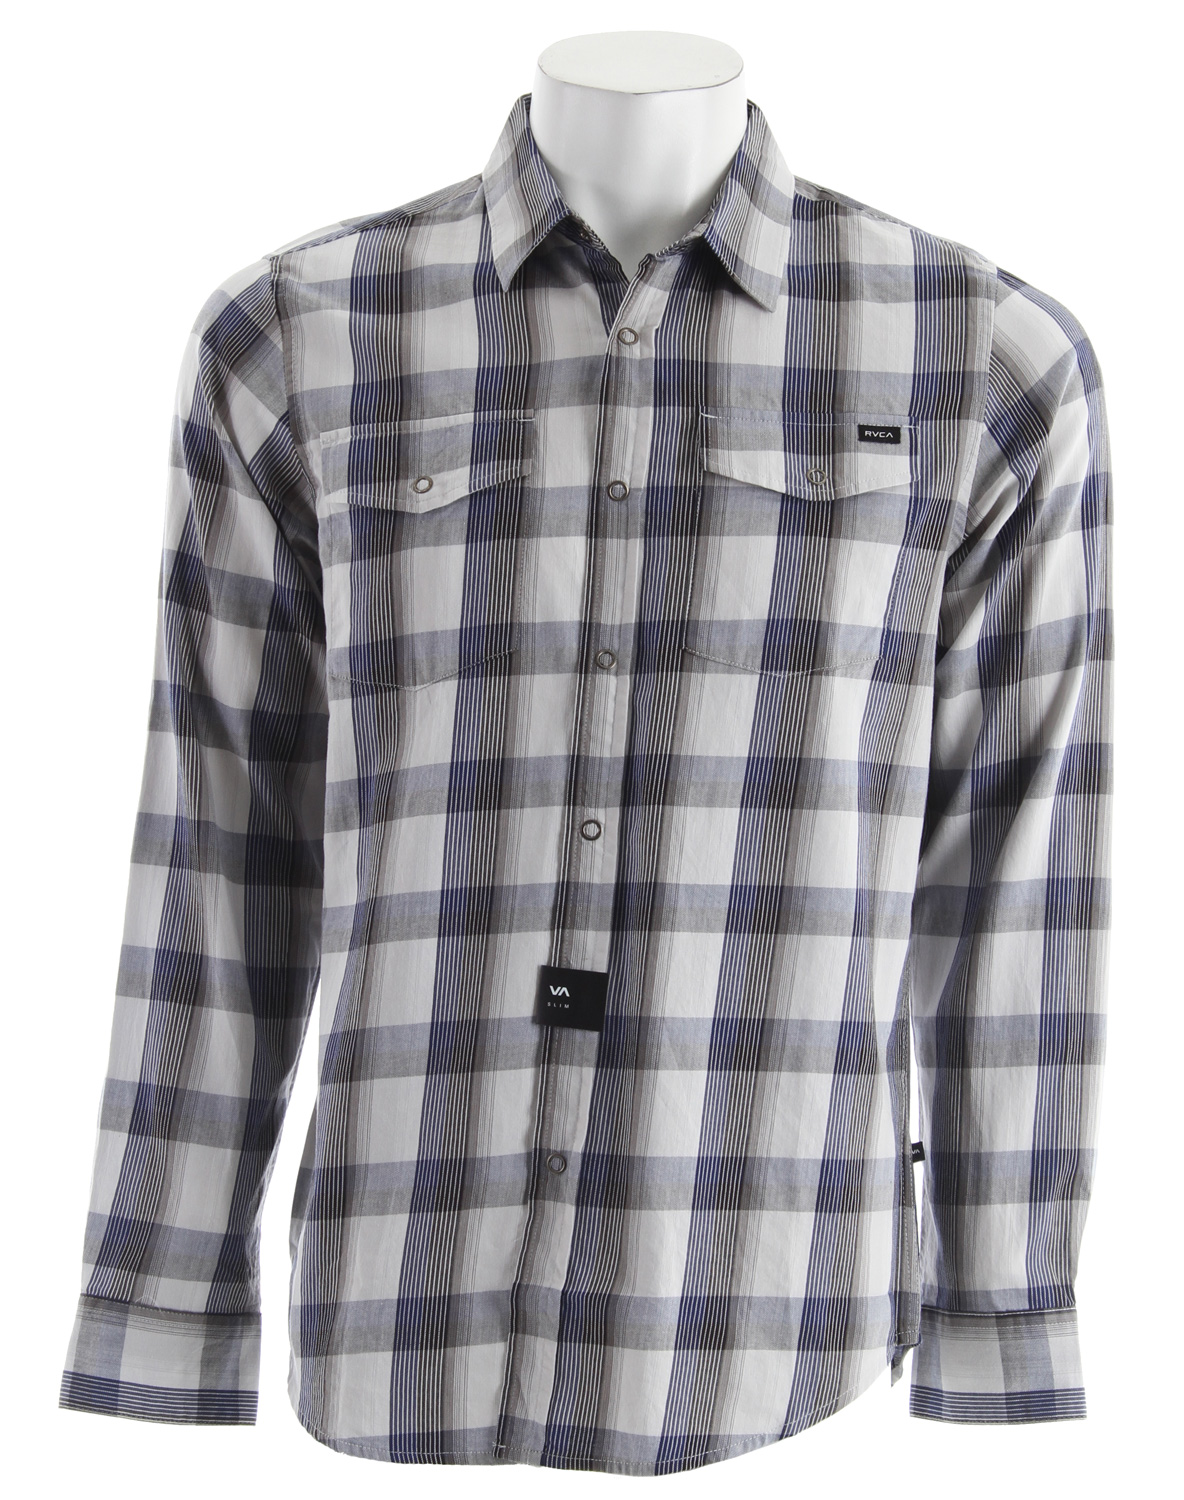 Key Features of the RVCA Noah Plaid L/S Shirt: Slim fit - cotton baby twill mercerized woven long sleeve shirt with ring snaps Two front pockets with flap and snaps RVCA woven label at left front pocket VA Flag label at bottom left side - $39.95